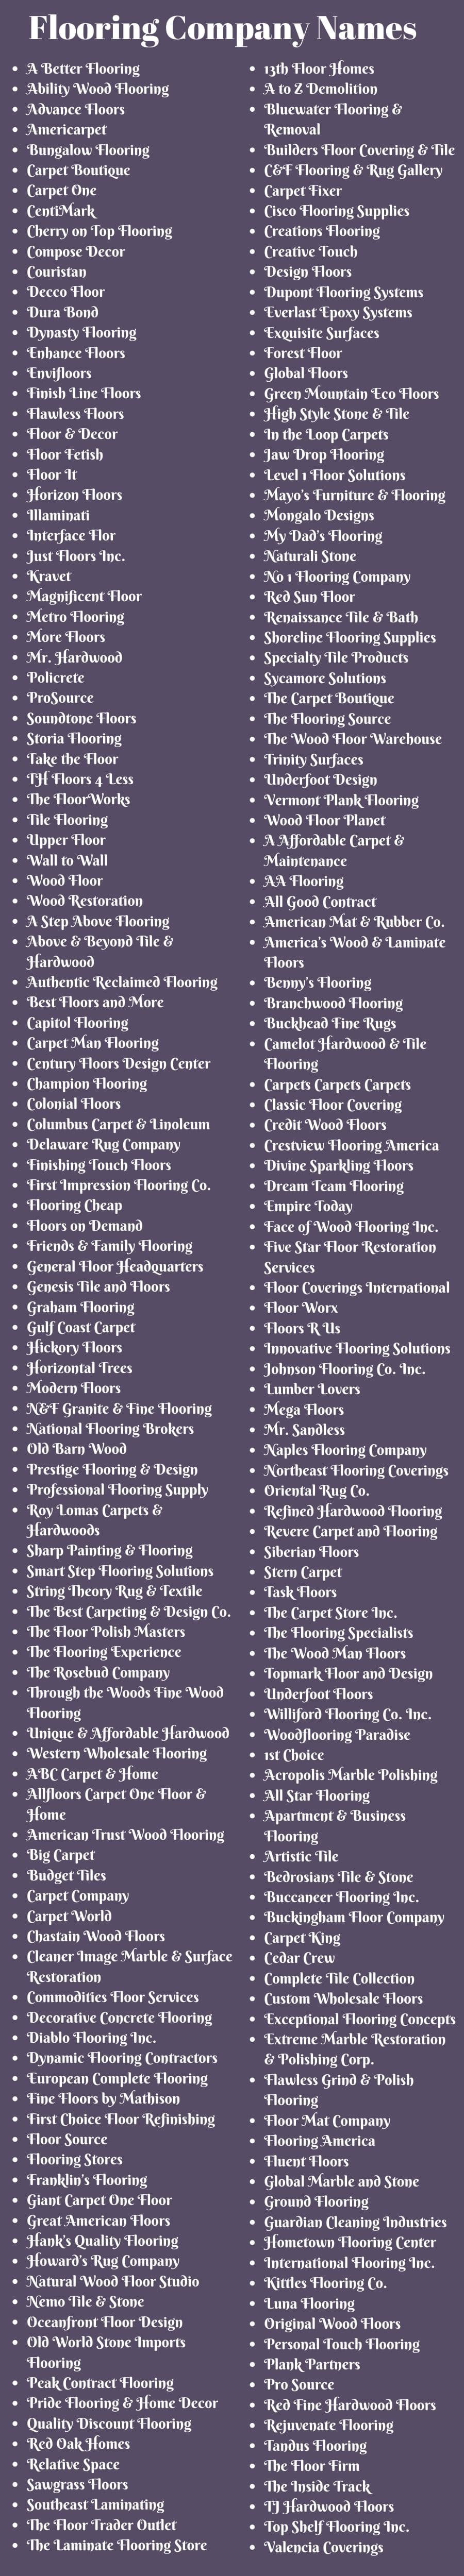 Flooring Company Names 400 Flooring Store Names Worth Start